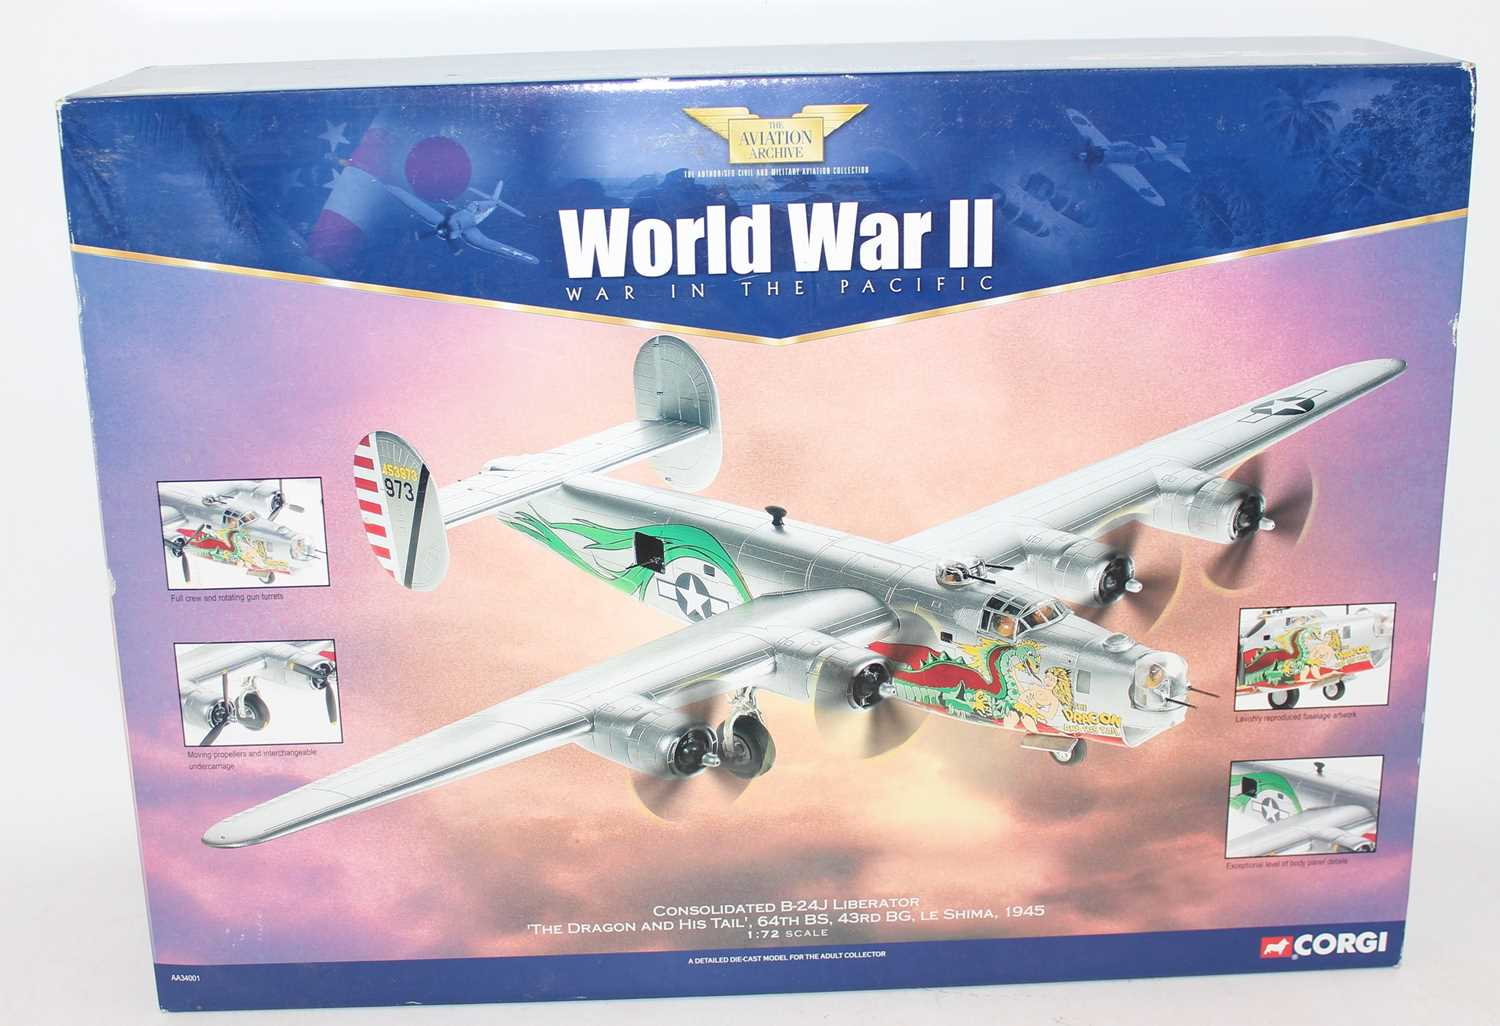 A Corgi Aviation Archive model No. AA34001 1/72 scale diecast model of a Consolidated B-24J